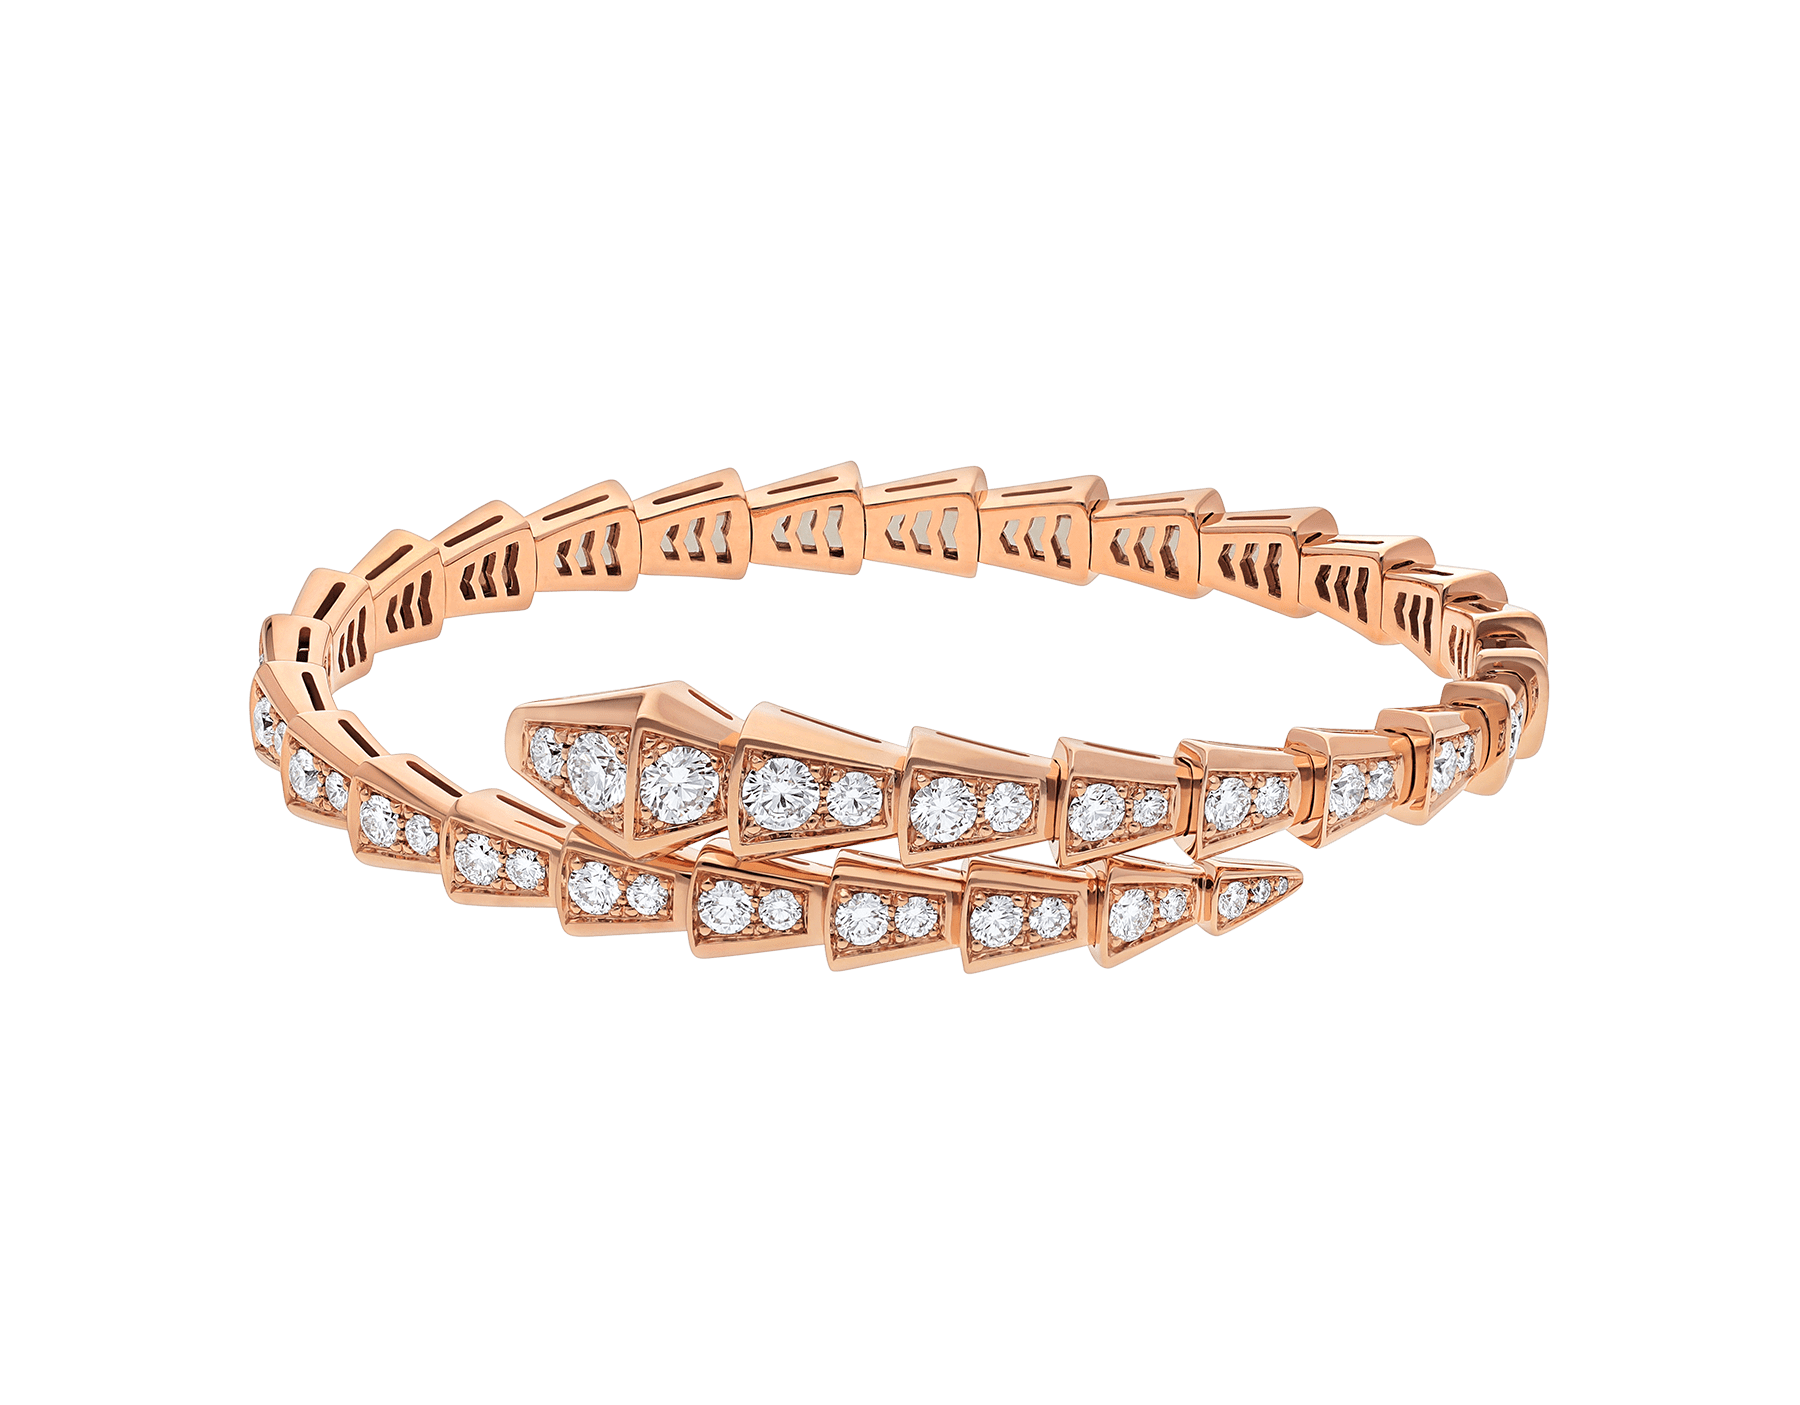 Serpenti Viperone-coil thin bracelet in 18 kt rose gold and full pavé diamonds . BR858084 image 2